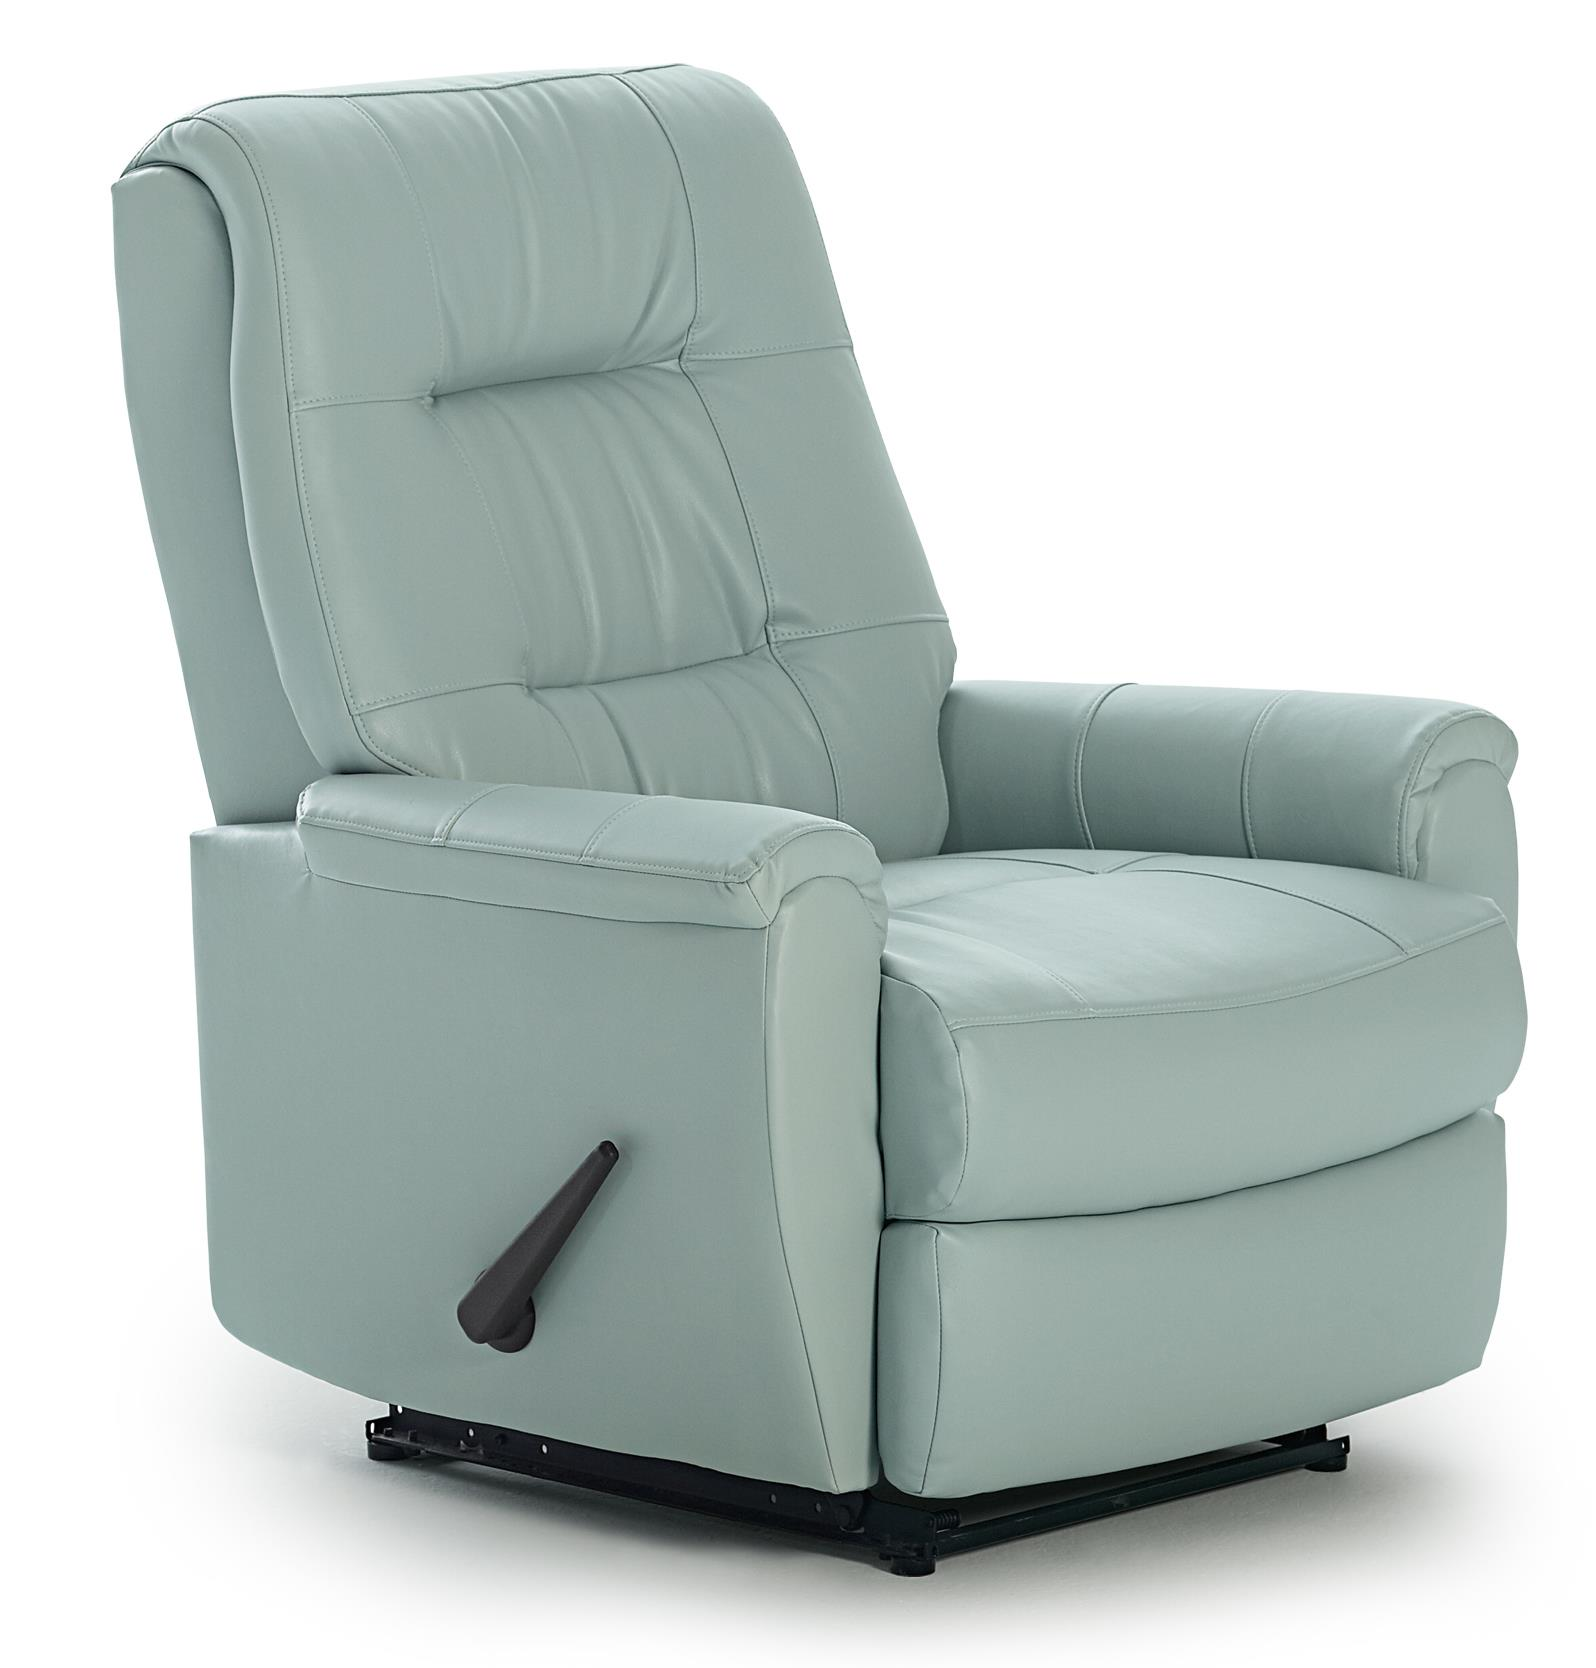 Storytime Recliners Rocker Recliner by Best Chairs Storytime Series at Best Home Furnishings